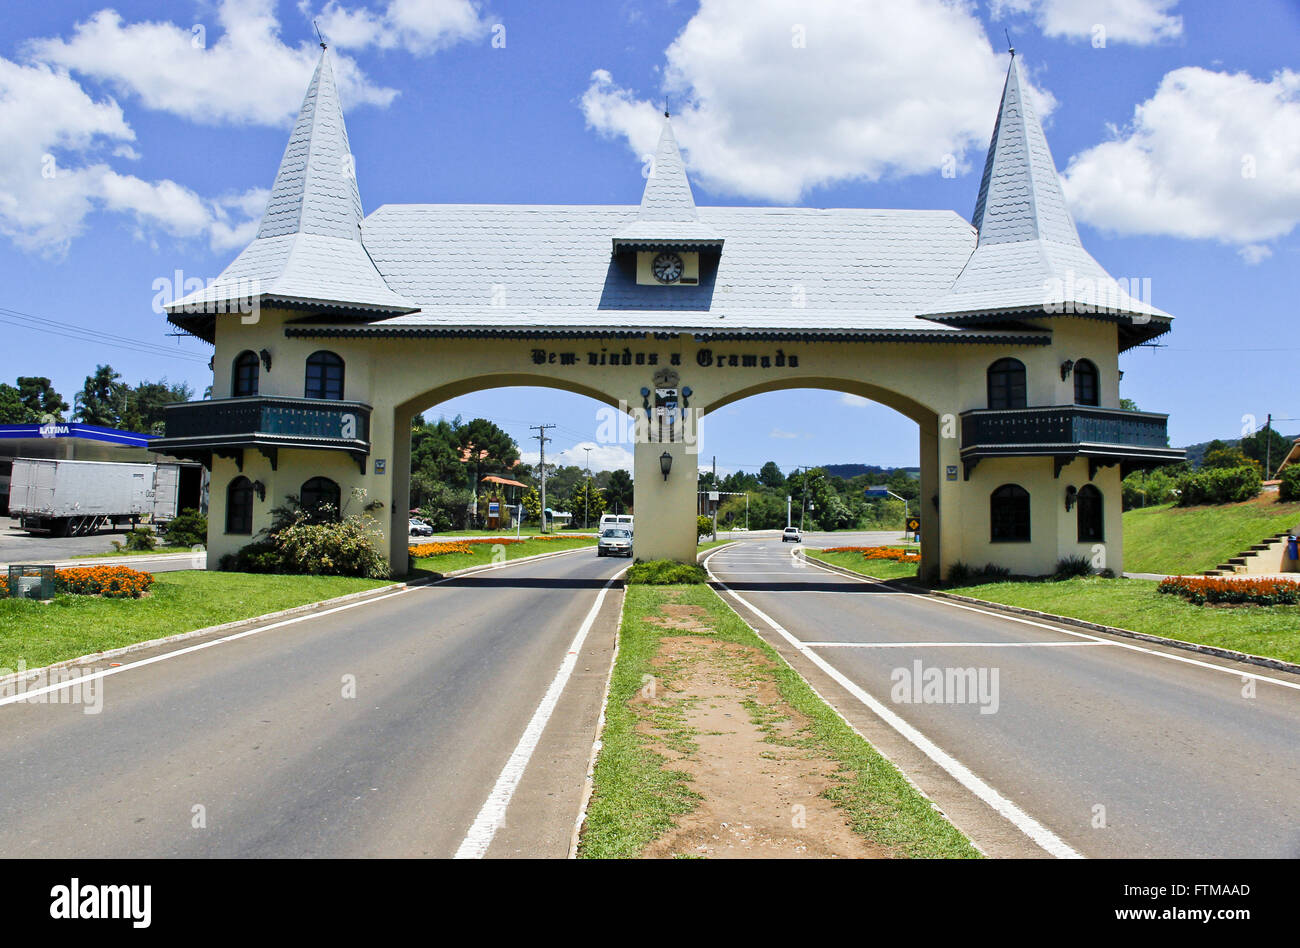 Portico city - Entrance Via Taquara - opened in 1991 in Norman style - Stock Image